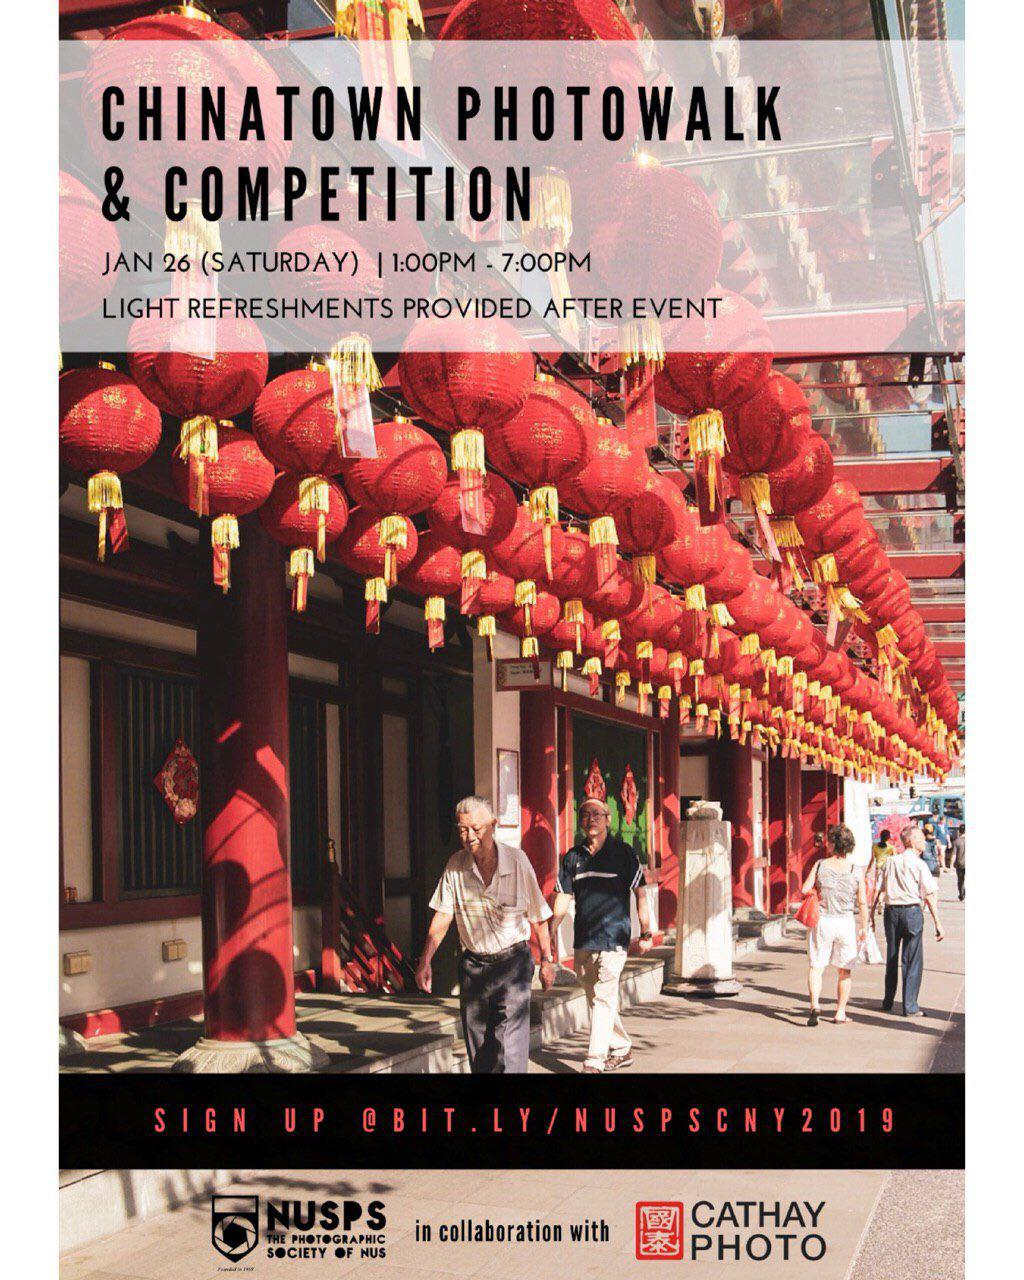 Chinese New Year Photowalk and Competition 2019